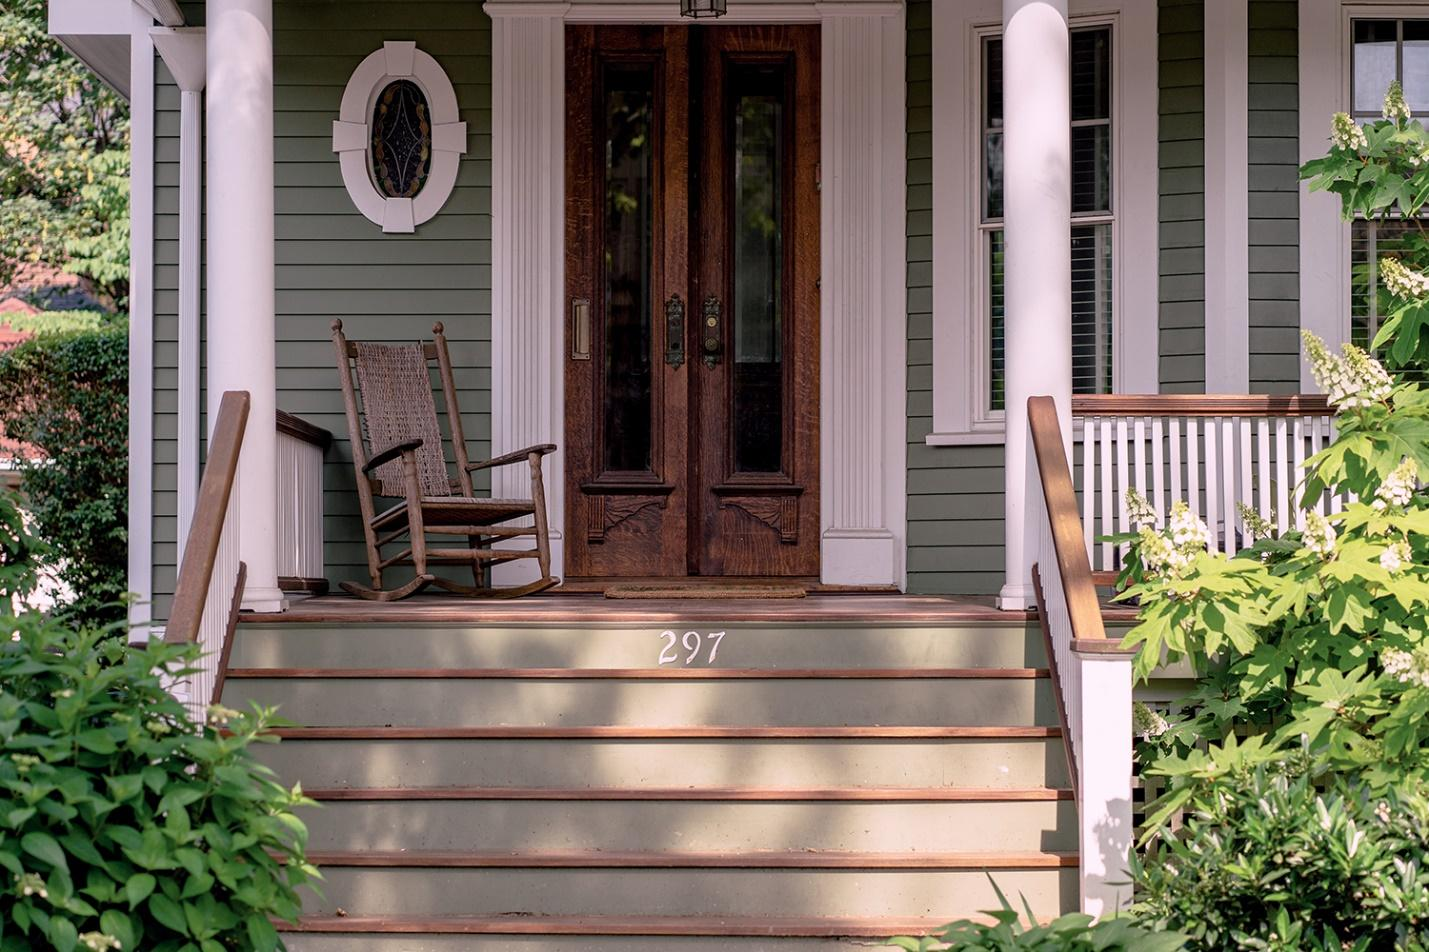 Rocking chair on a front porch.